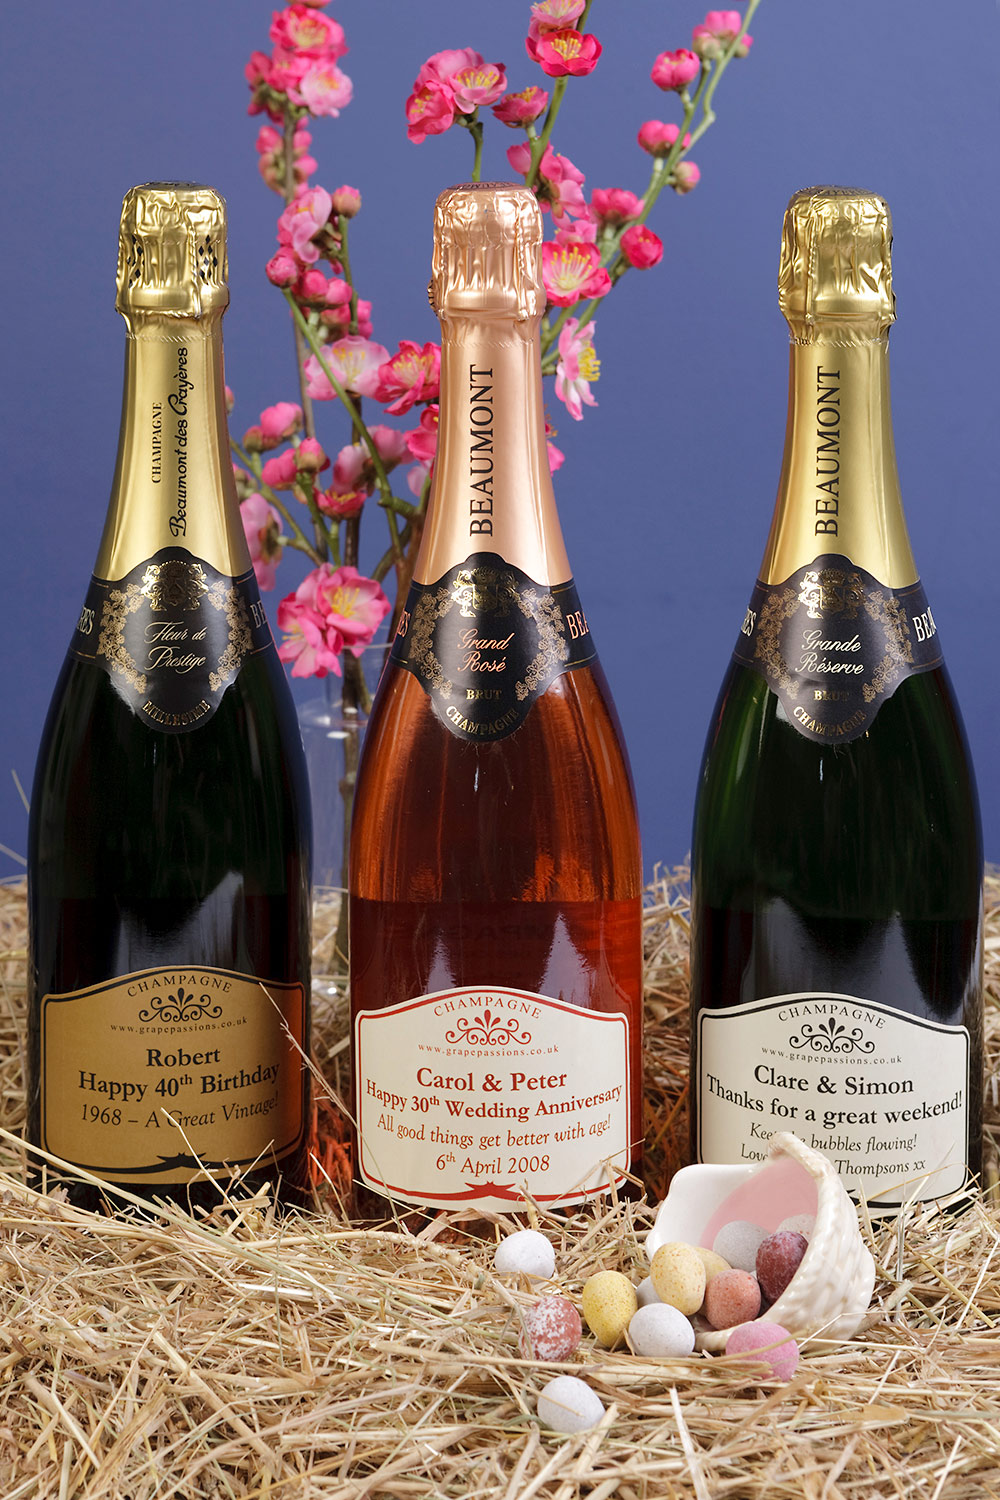 Personalised champagne style bottles for gifts. Photo: Keith Mindham